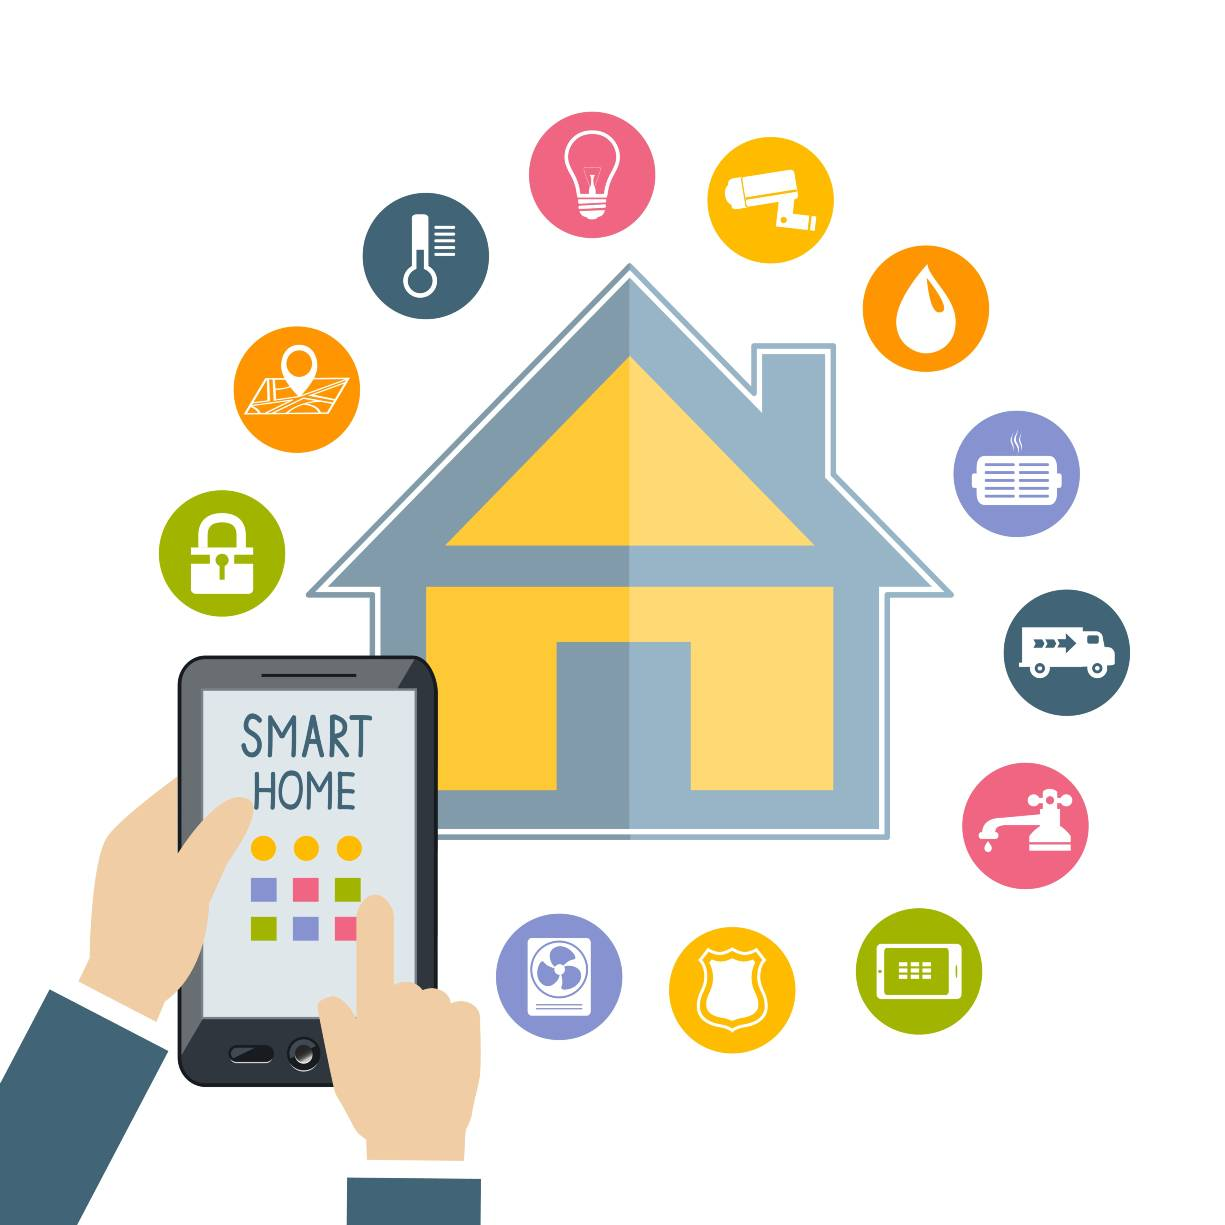 Smart Home Somfy Appsteuerung